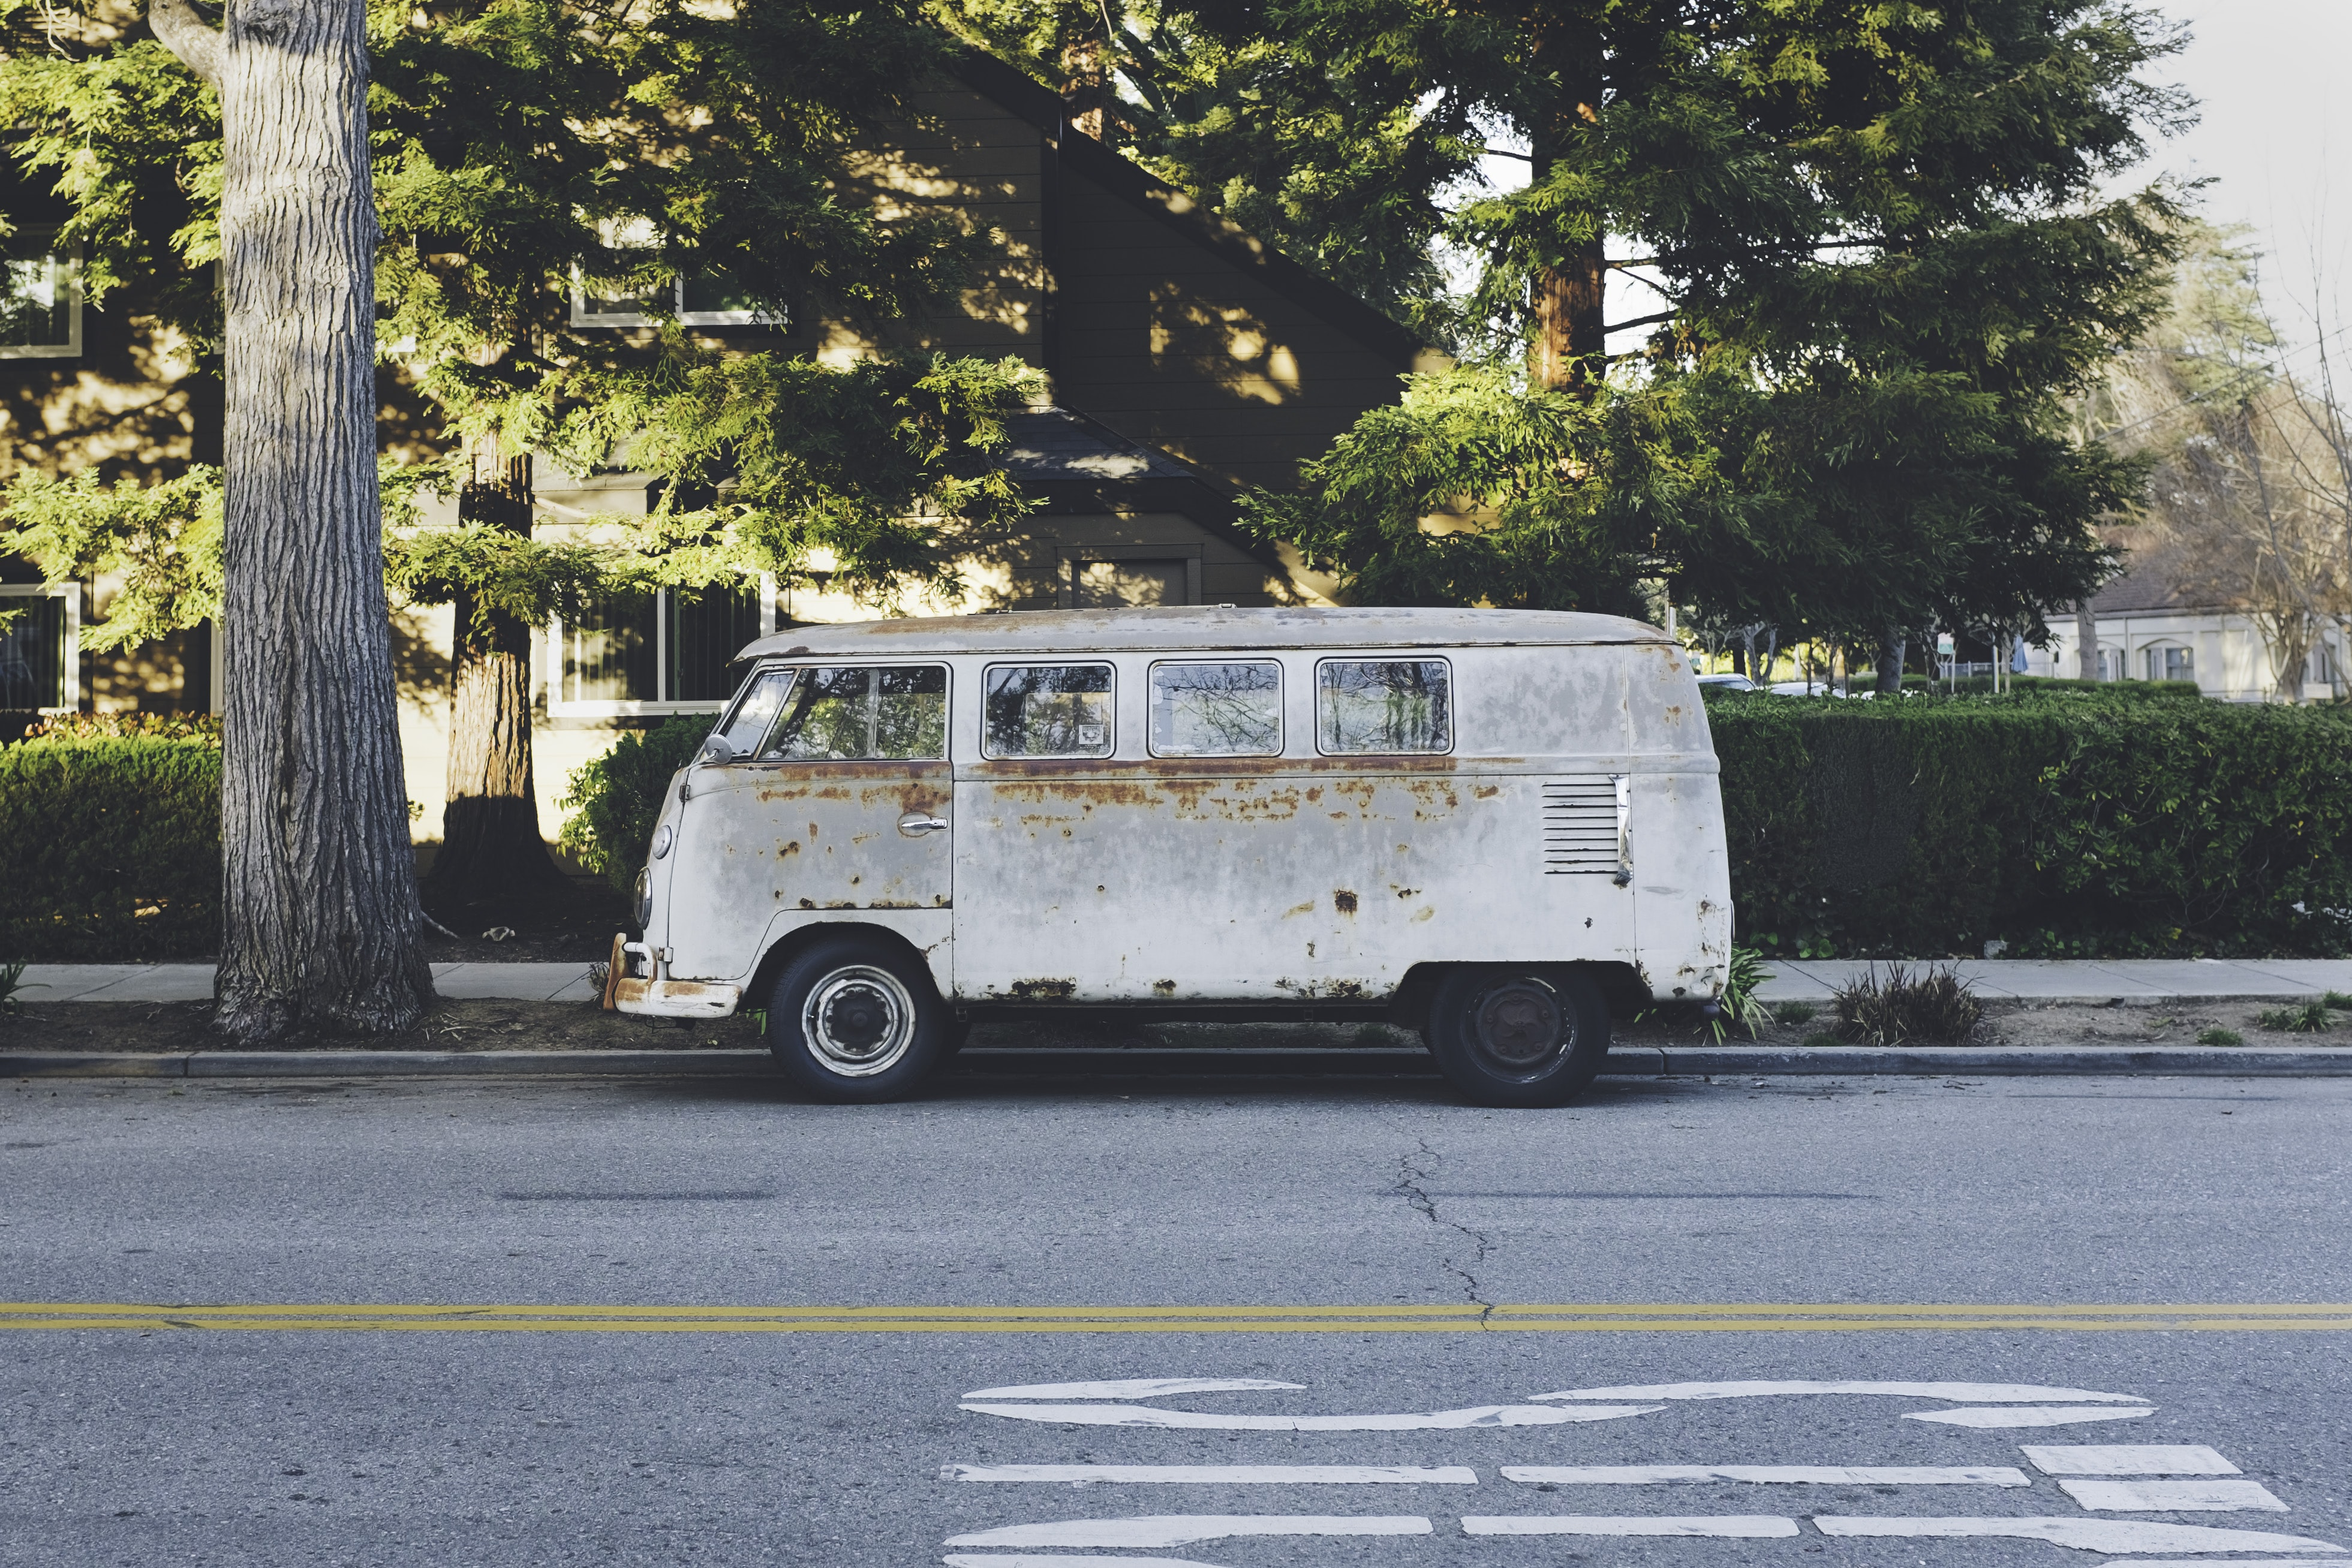 A white, rusty vintage Volkswagen bus parked on the side of a street by a large tree